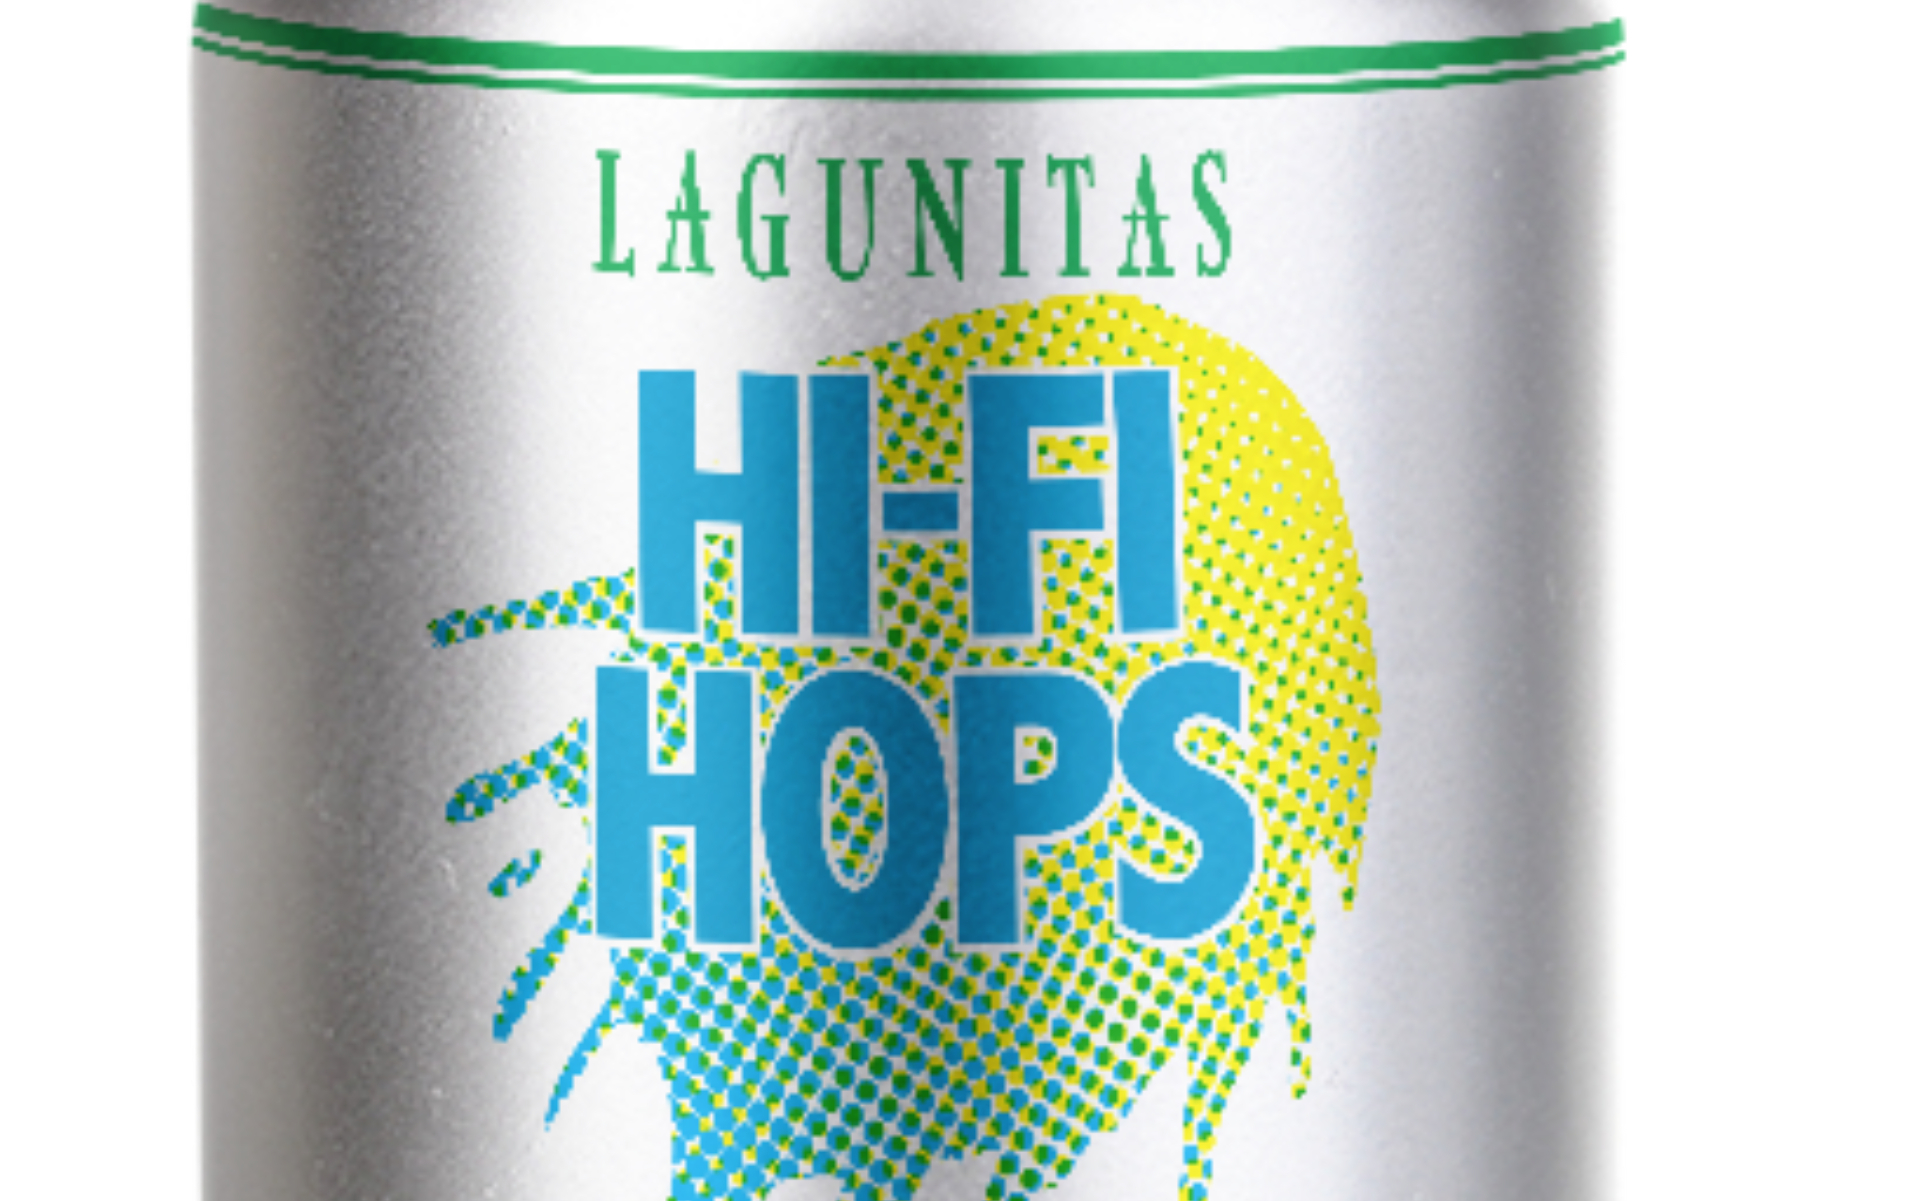 Hi-Fi Hops is for IPA beer lovers past their prime years of tolerance. (Courtesy of ABX)